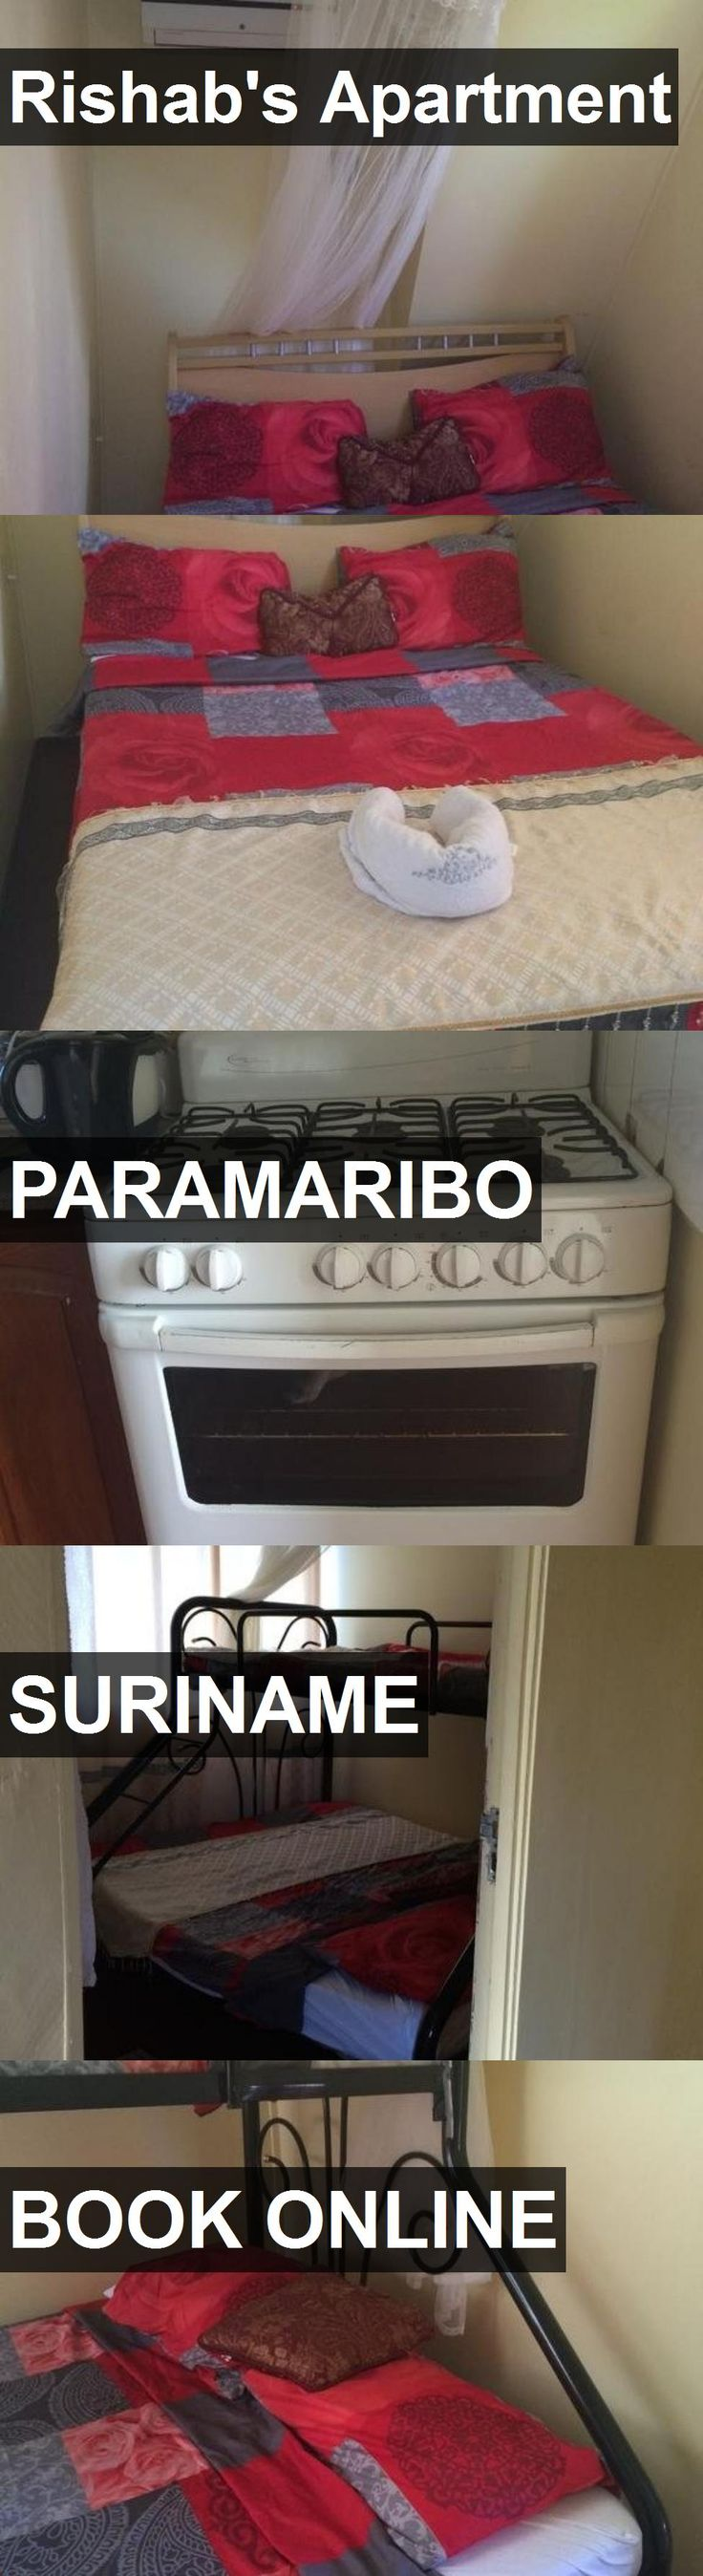 Hotel Rishab's Apartment in Paramaribo, Suriname. For more information, photos, reviews and best prices please follow the link. #Suriname #Paramaribo #Rishab'sApartment #hotel #travel #vacation